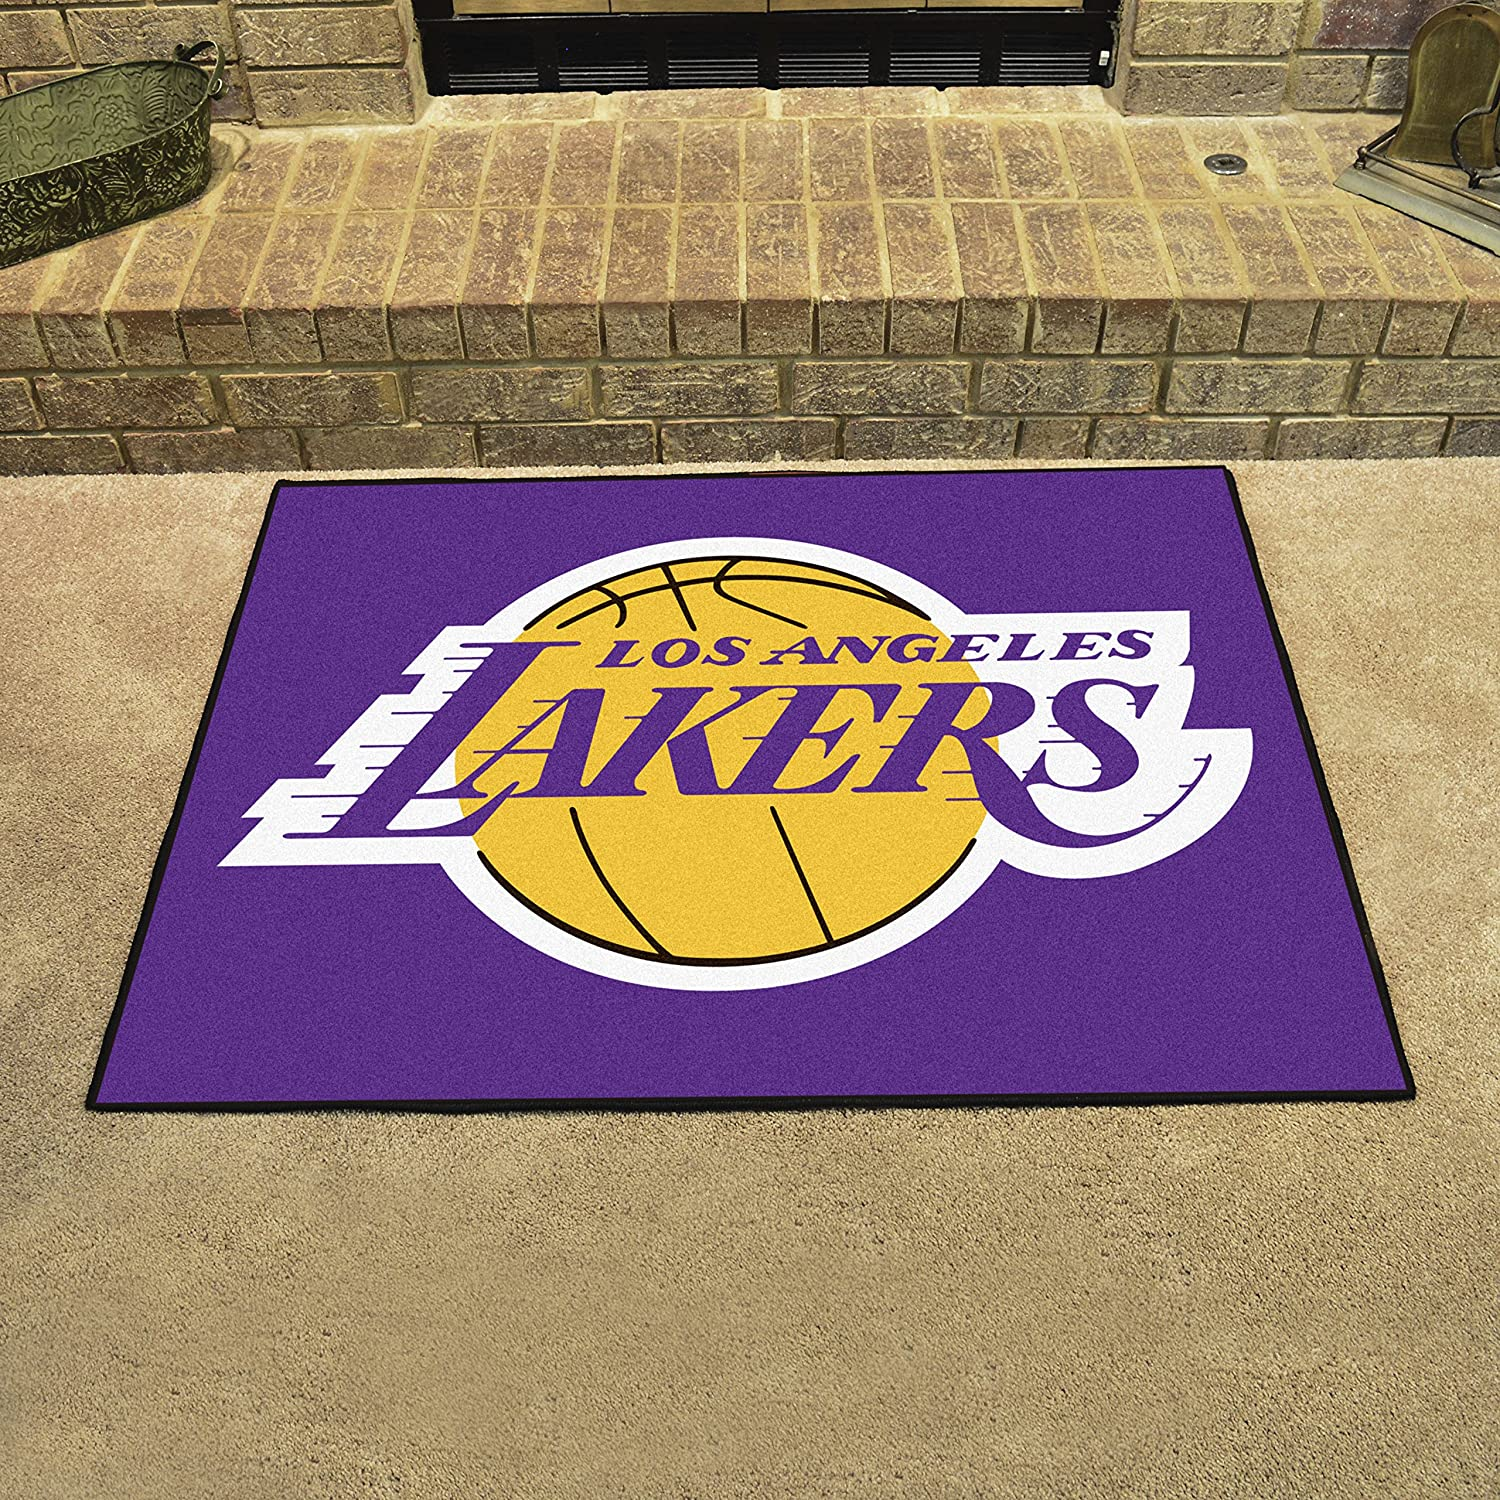 Los Angeles Lakers All-Star Mat FANMATS 19448 Team Color 33.75x42.5 NBA